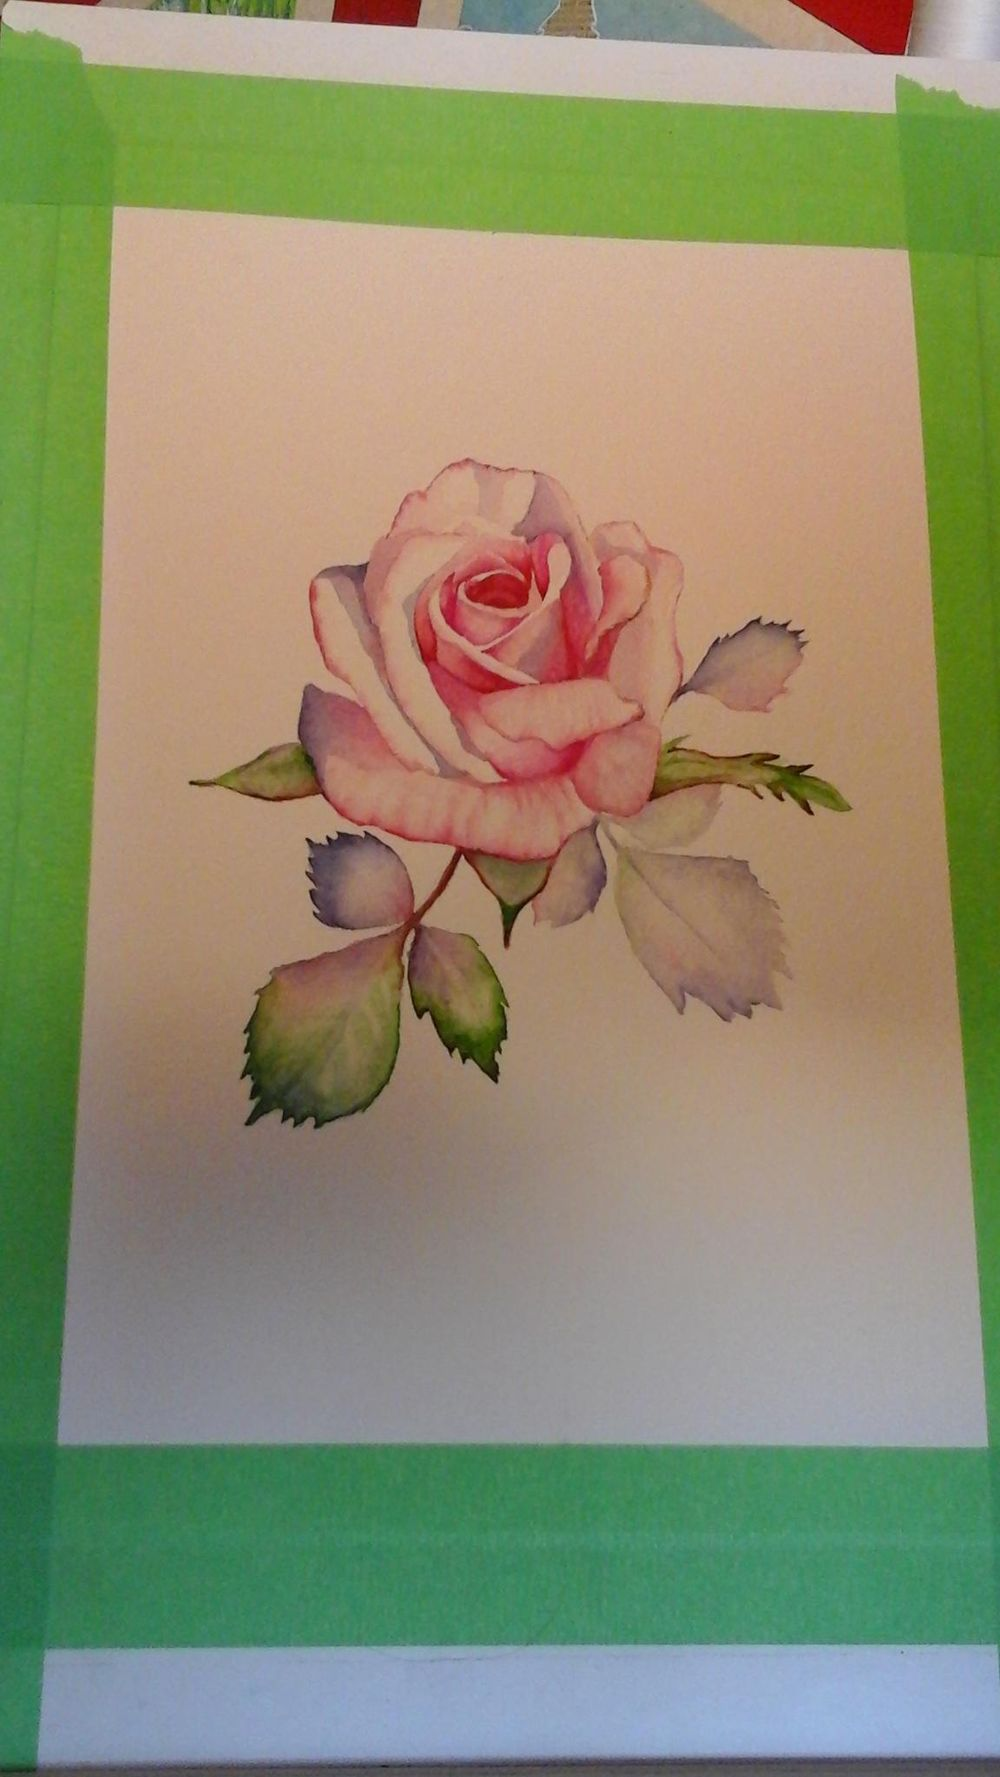 Pink rose - image 1 - student project